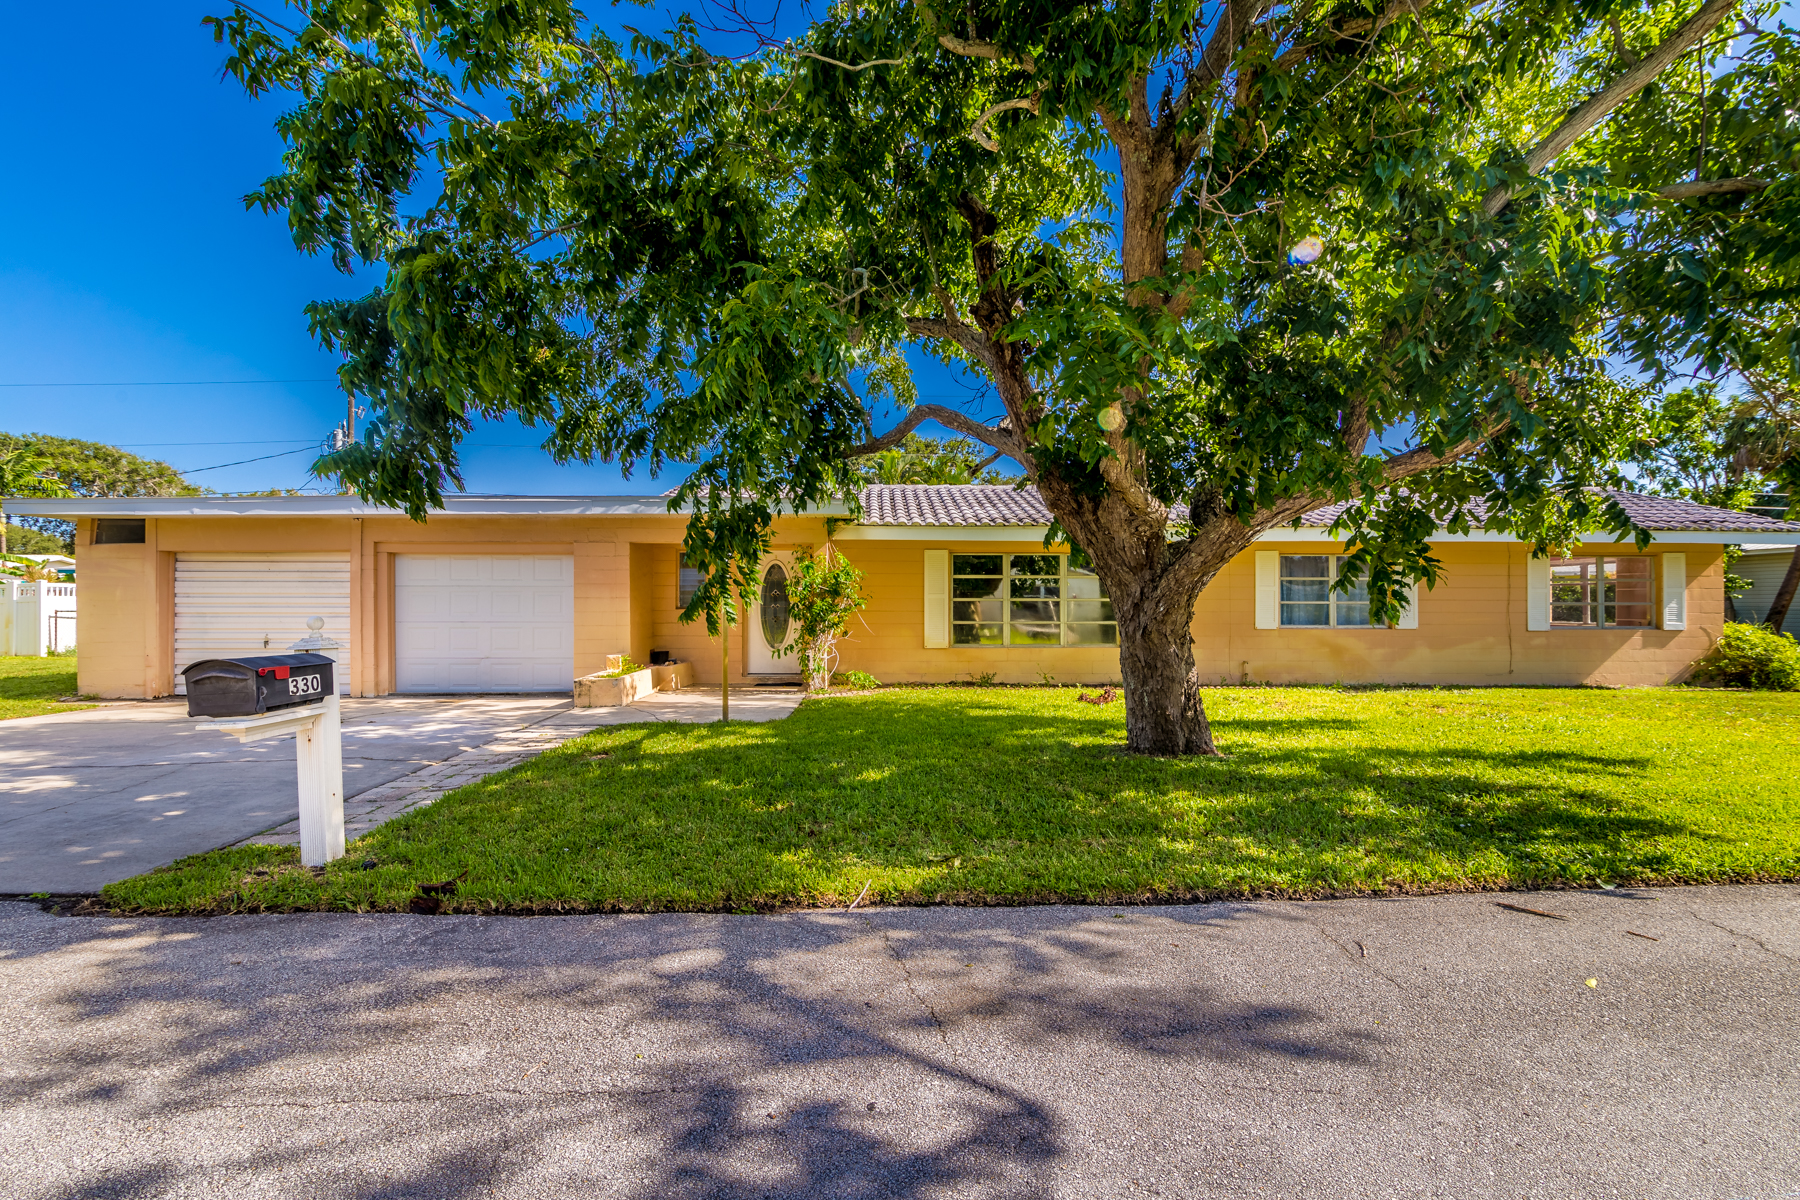 Single Family Home for Sale at Solid Home on Quiet Street 330 Rita Boulevard Melbourne Beach, Florida 32951 United States